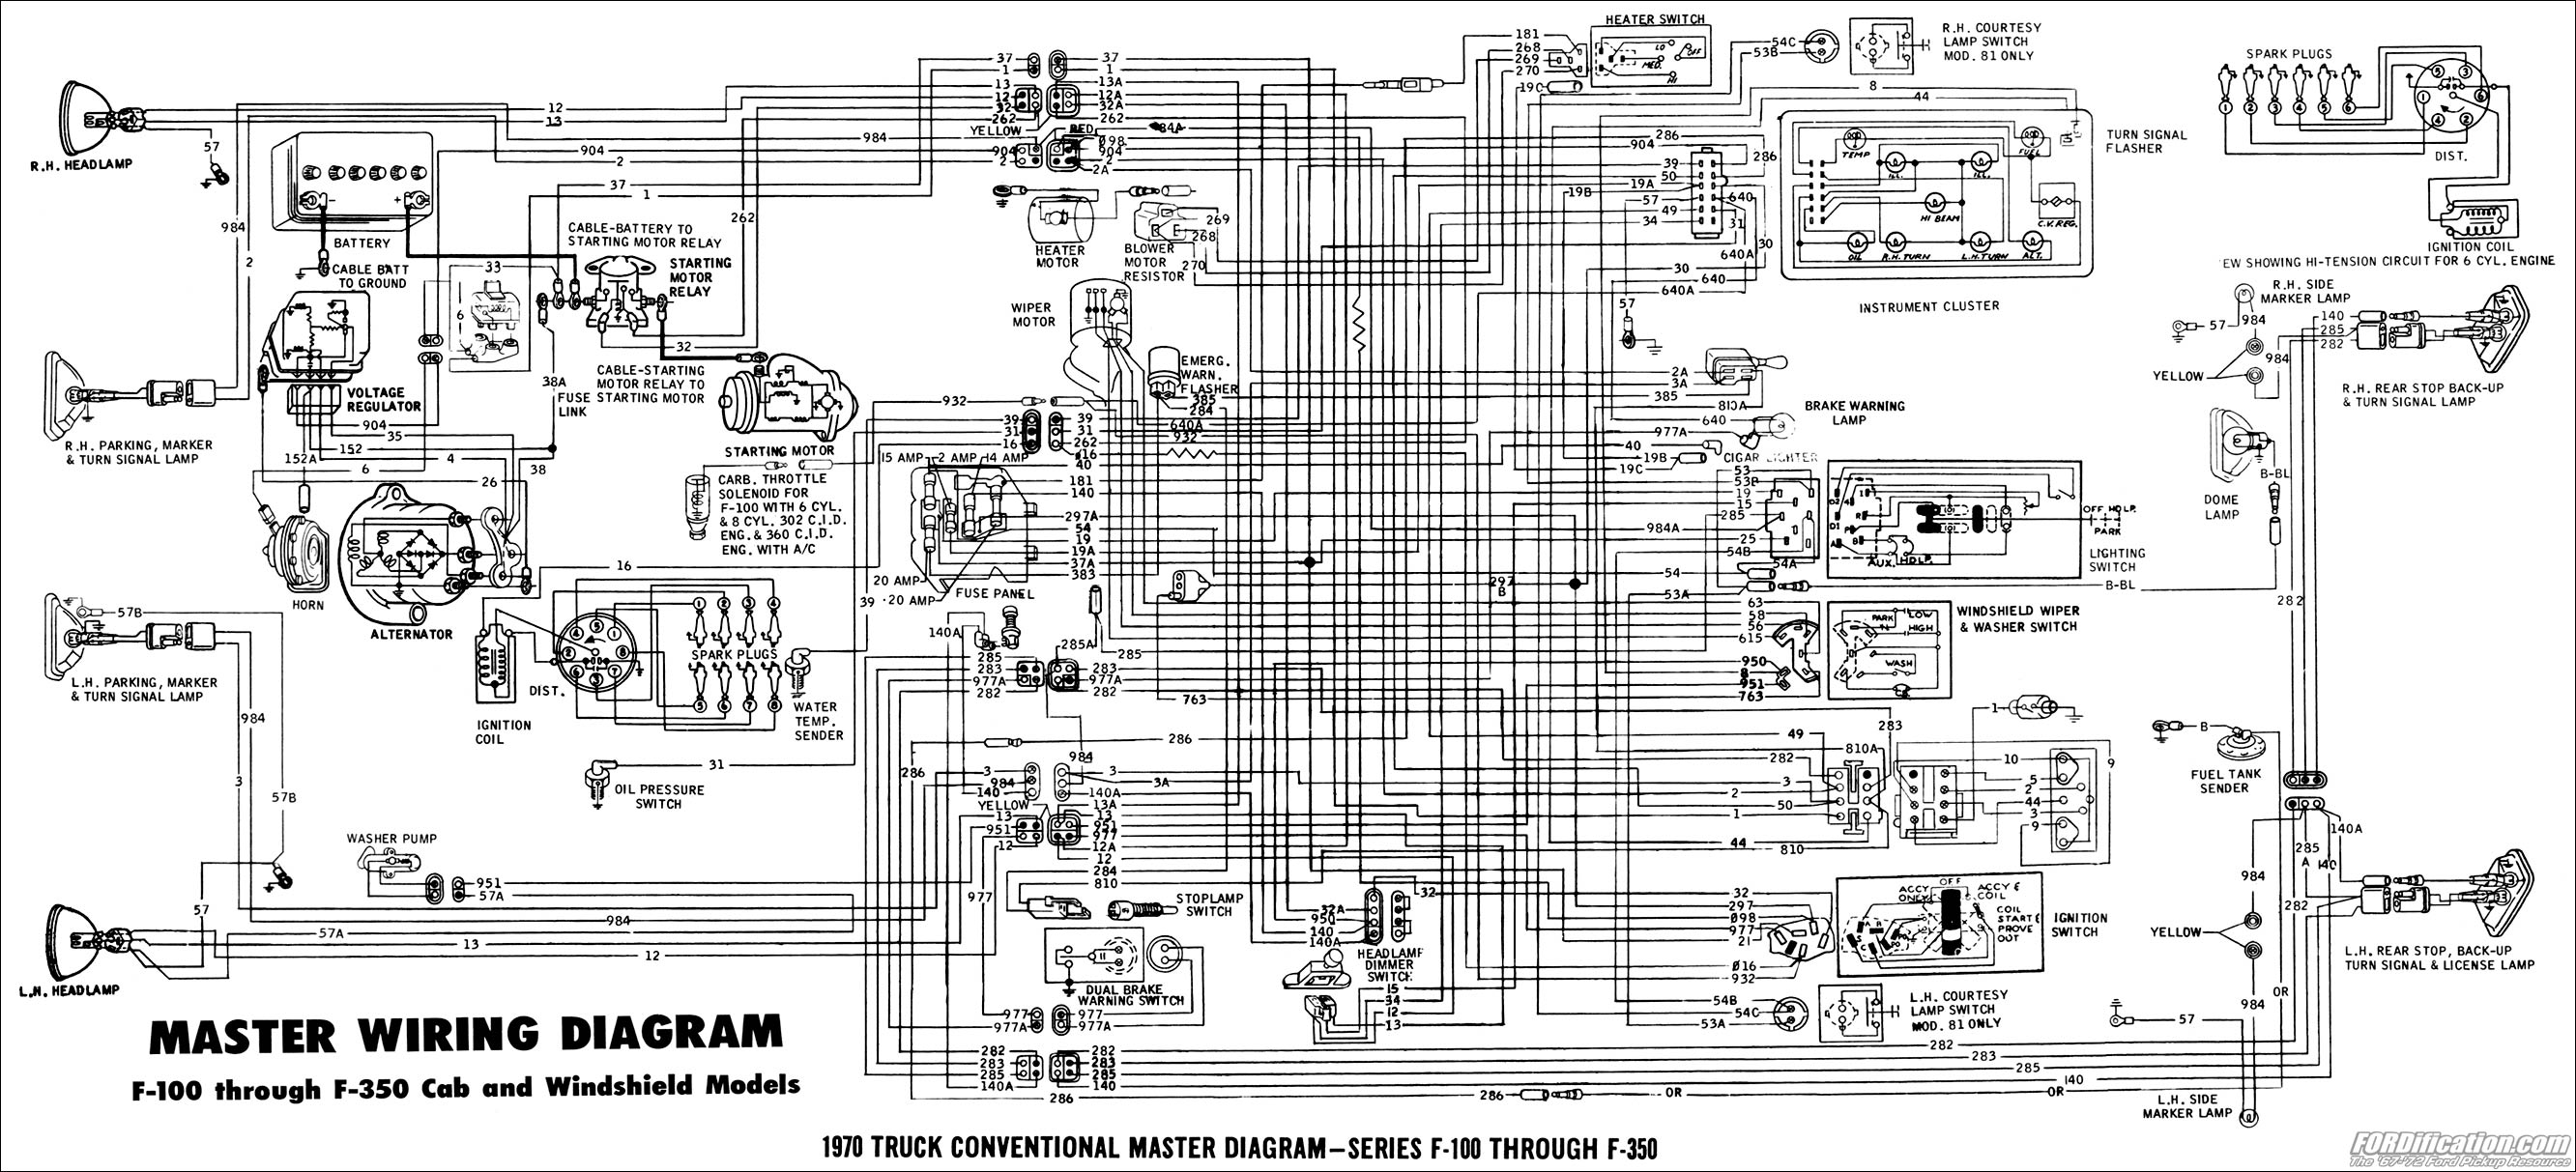 Remote Start Wiring Diagrams & Picture Of Installing The Remote ...